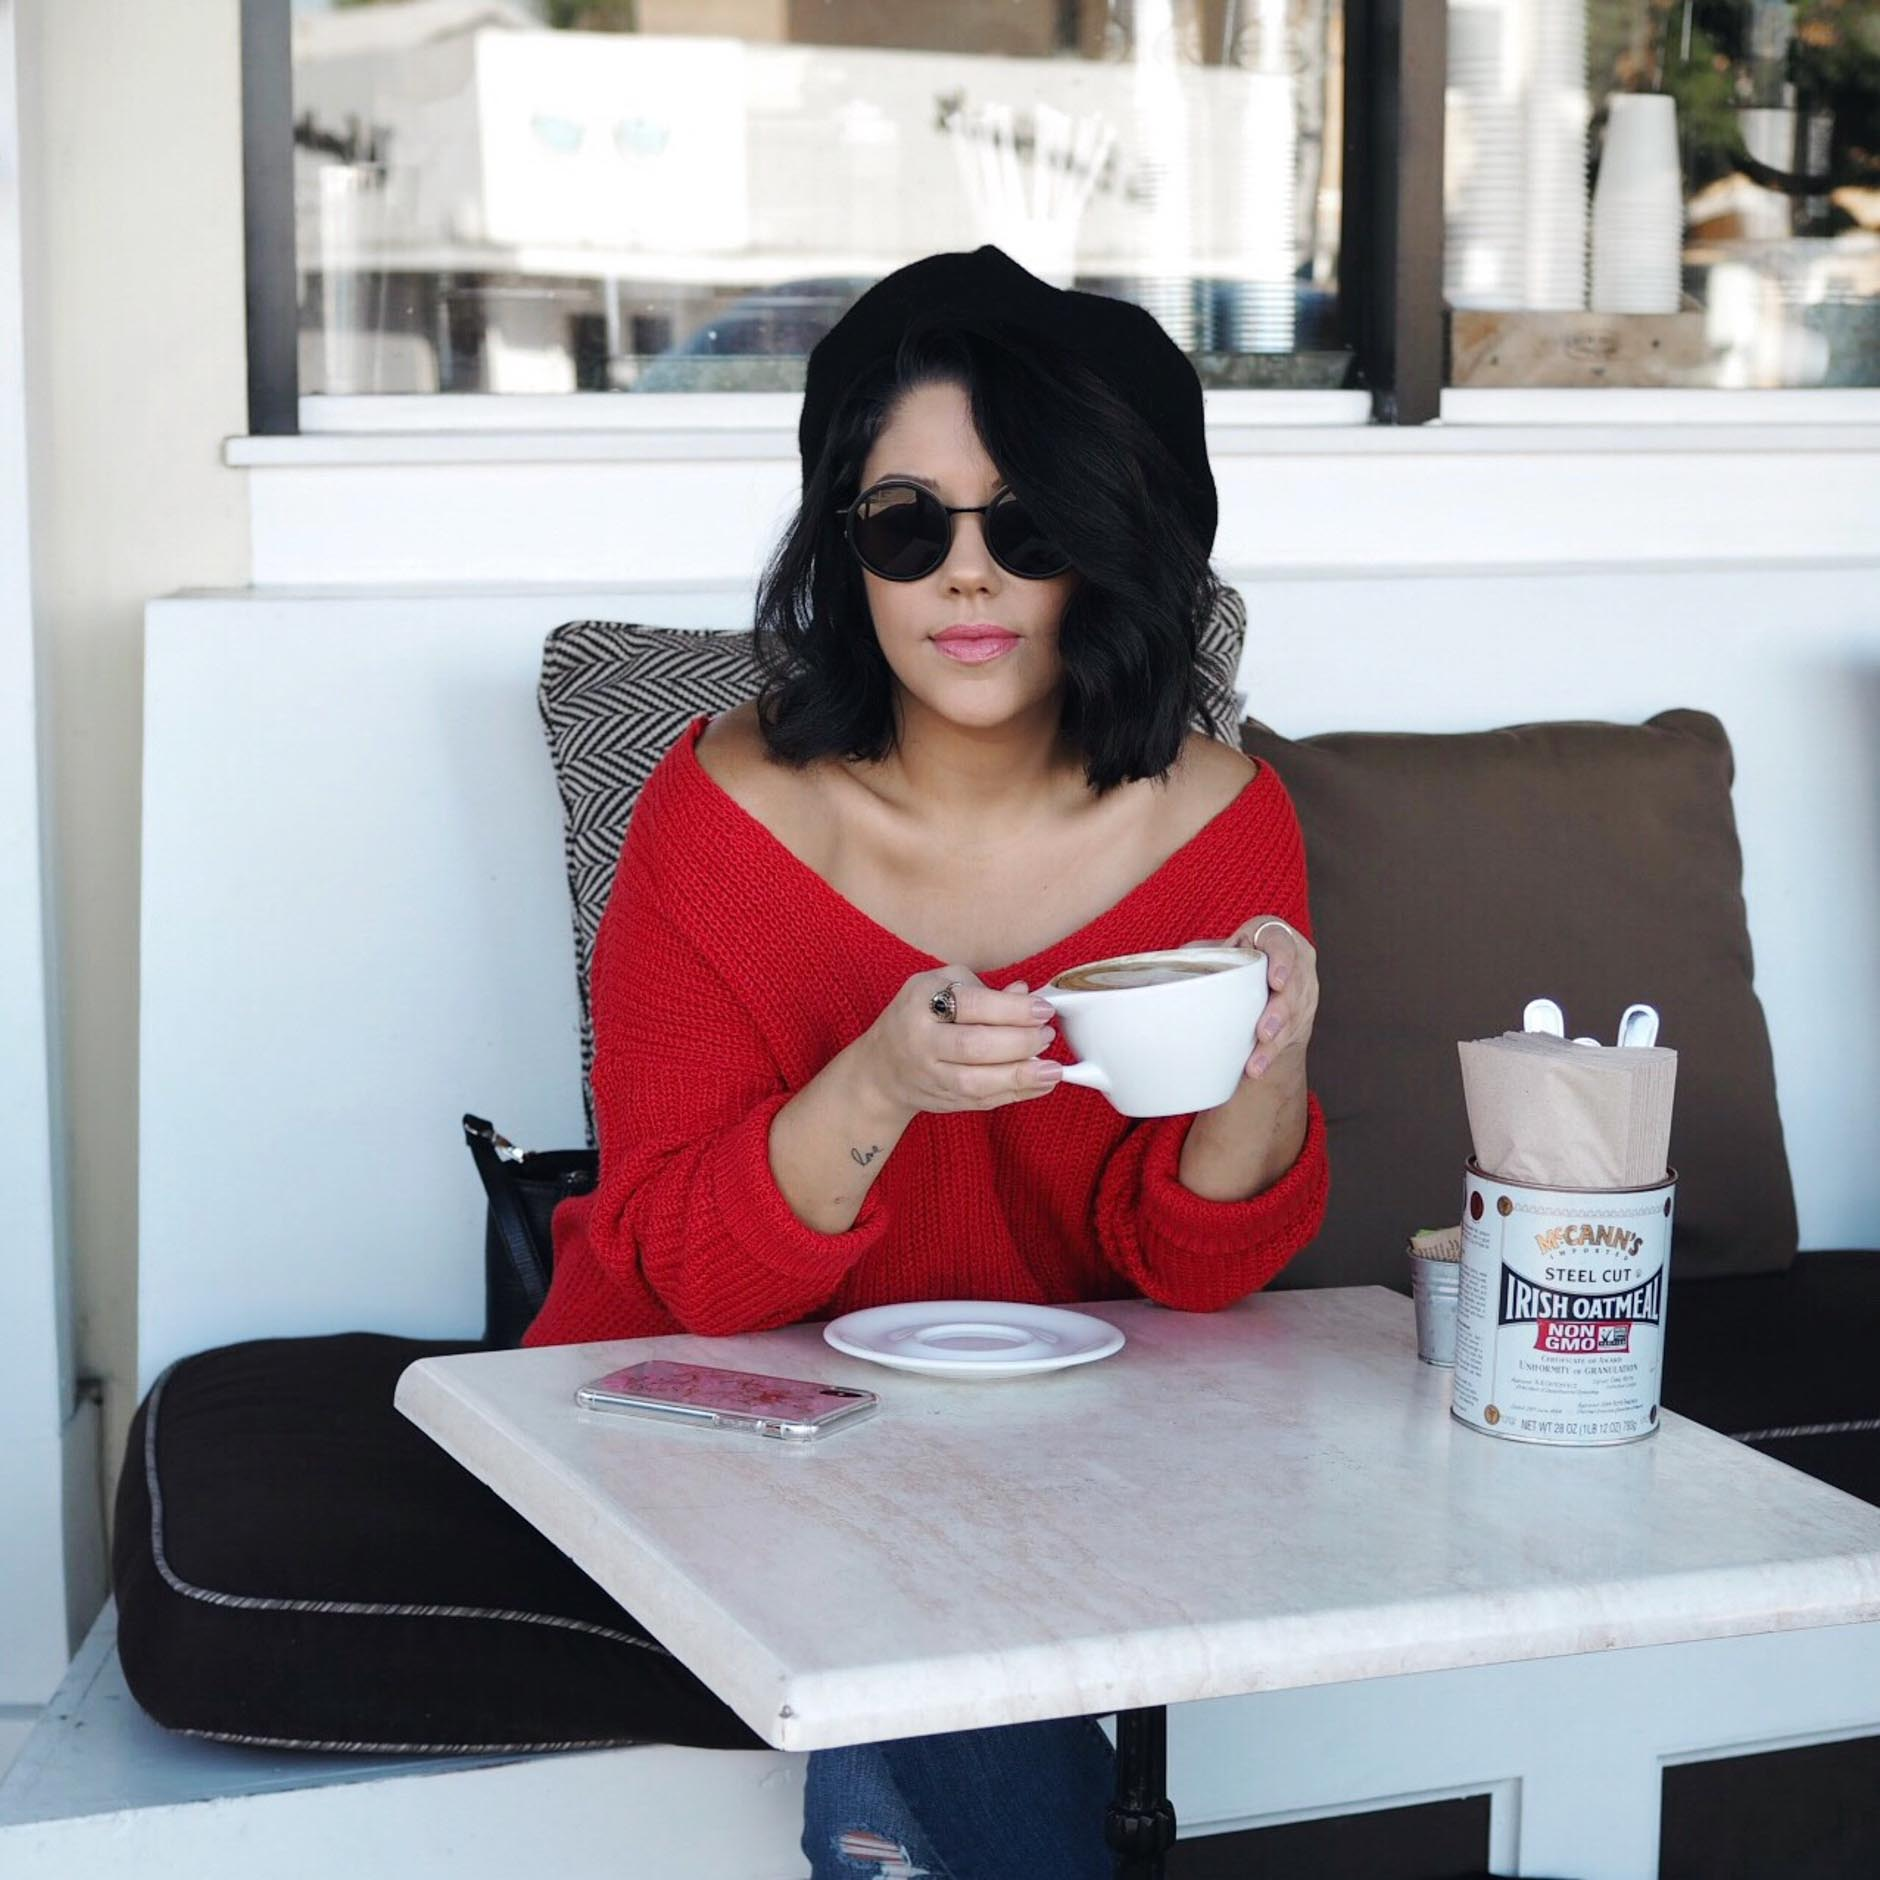 naty michele wearing off the shoulder sweater drinking coffee